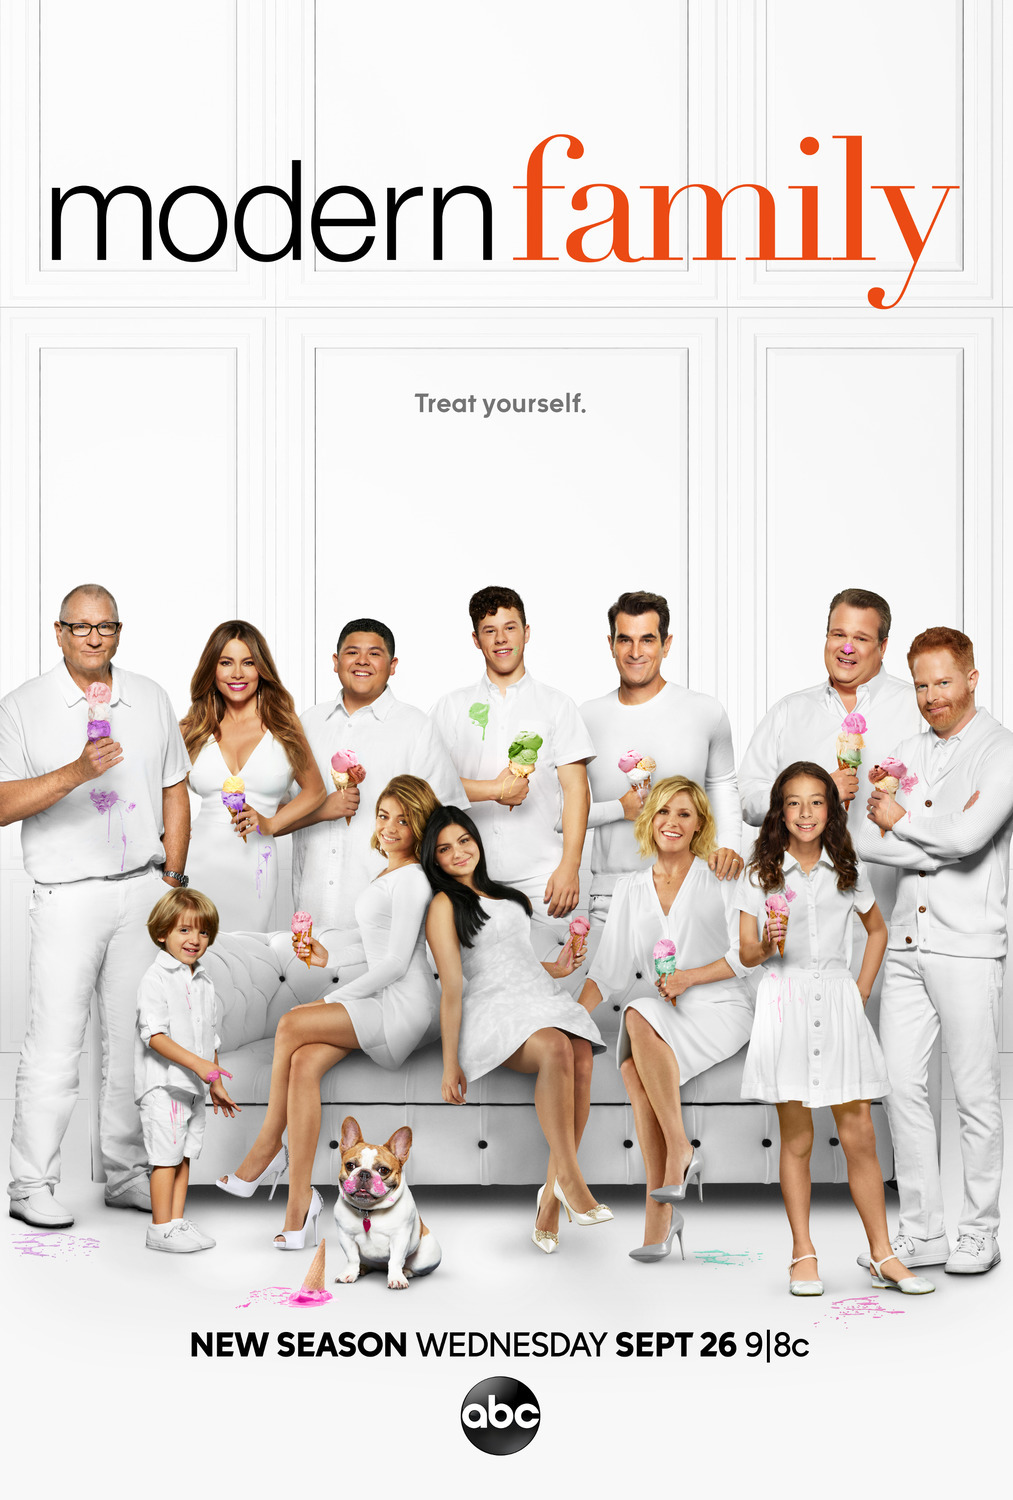 Modern Family (TV Series 2009– ) - IMDb